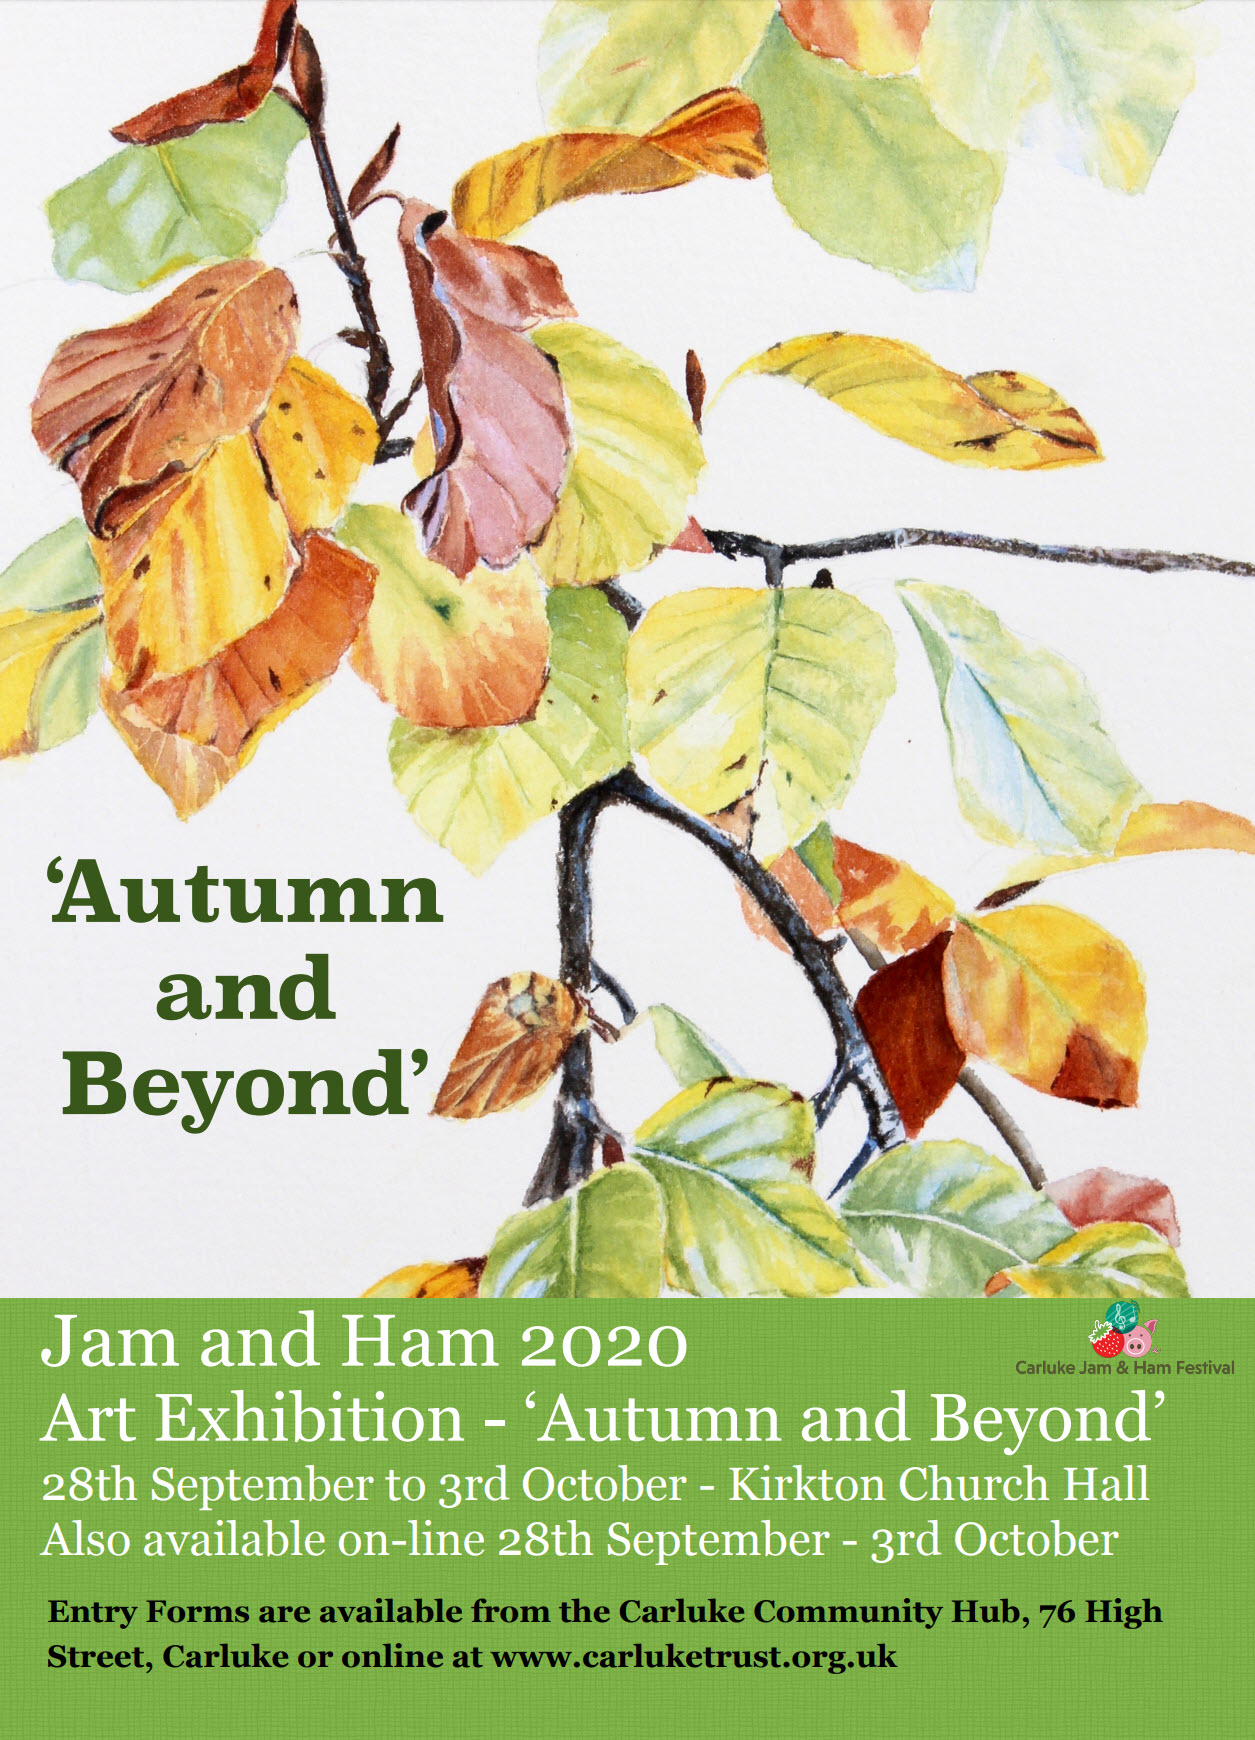 Get involved with the Jam and Ham 2020 Art Exhibition! – 'Autumn and Beyond'